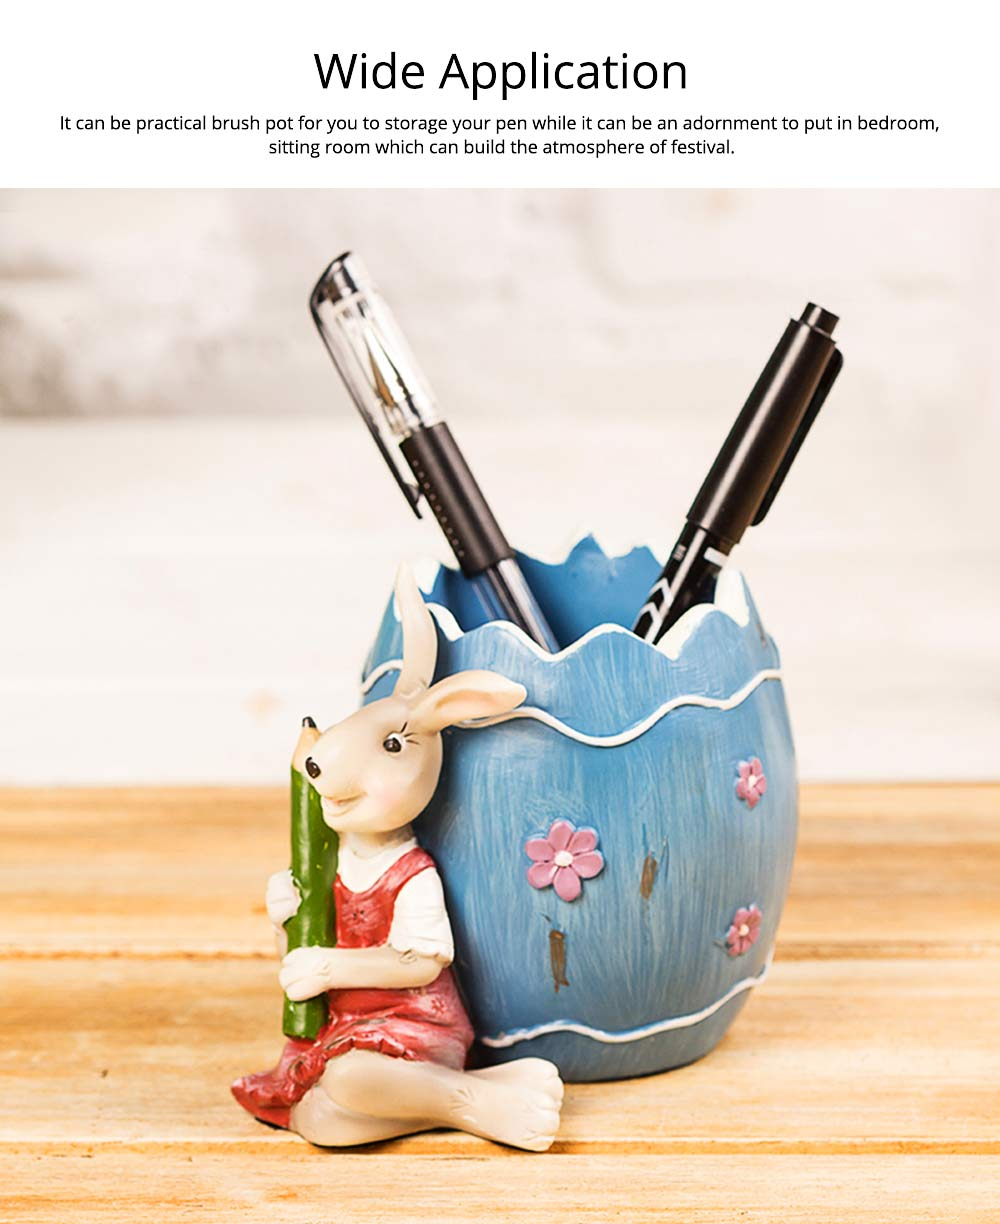 Lovely Easter Pen Pot Pencil Container, Cartoon Bucolic Rabbit Brush Pot 4